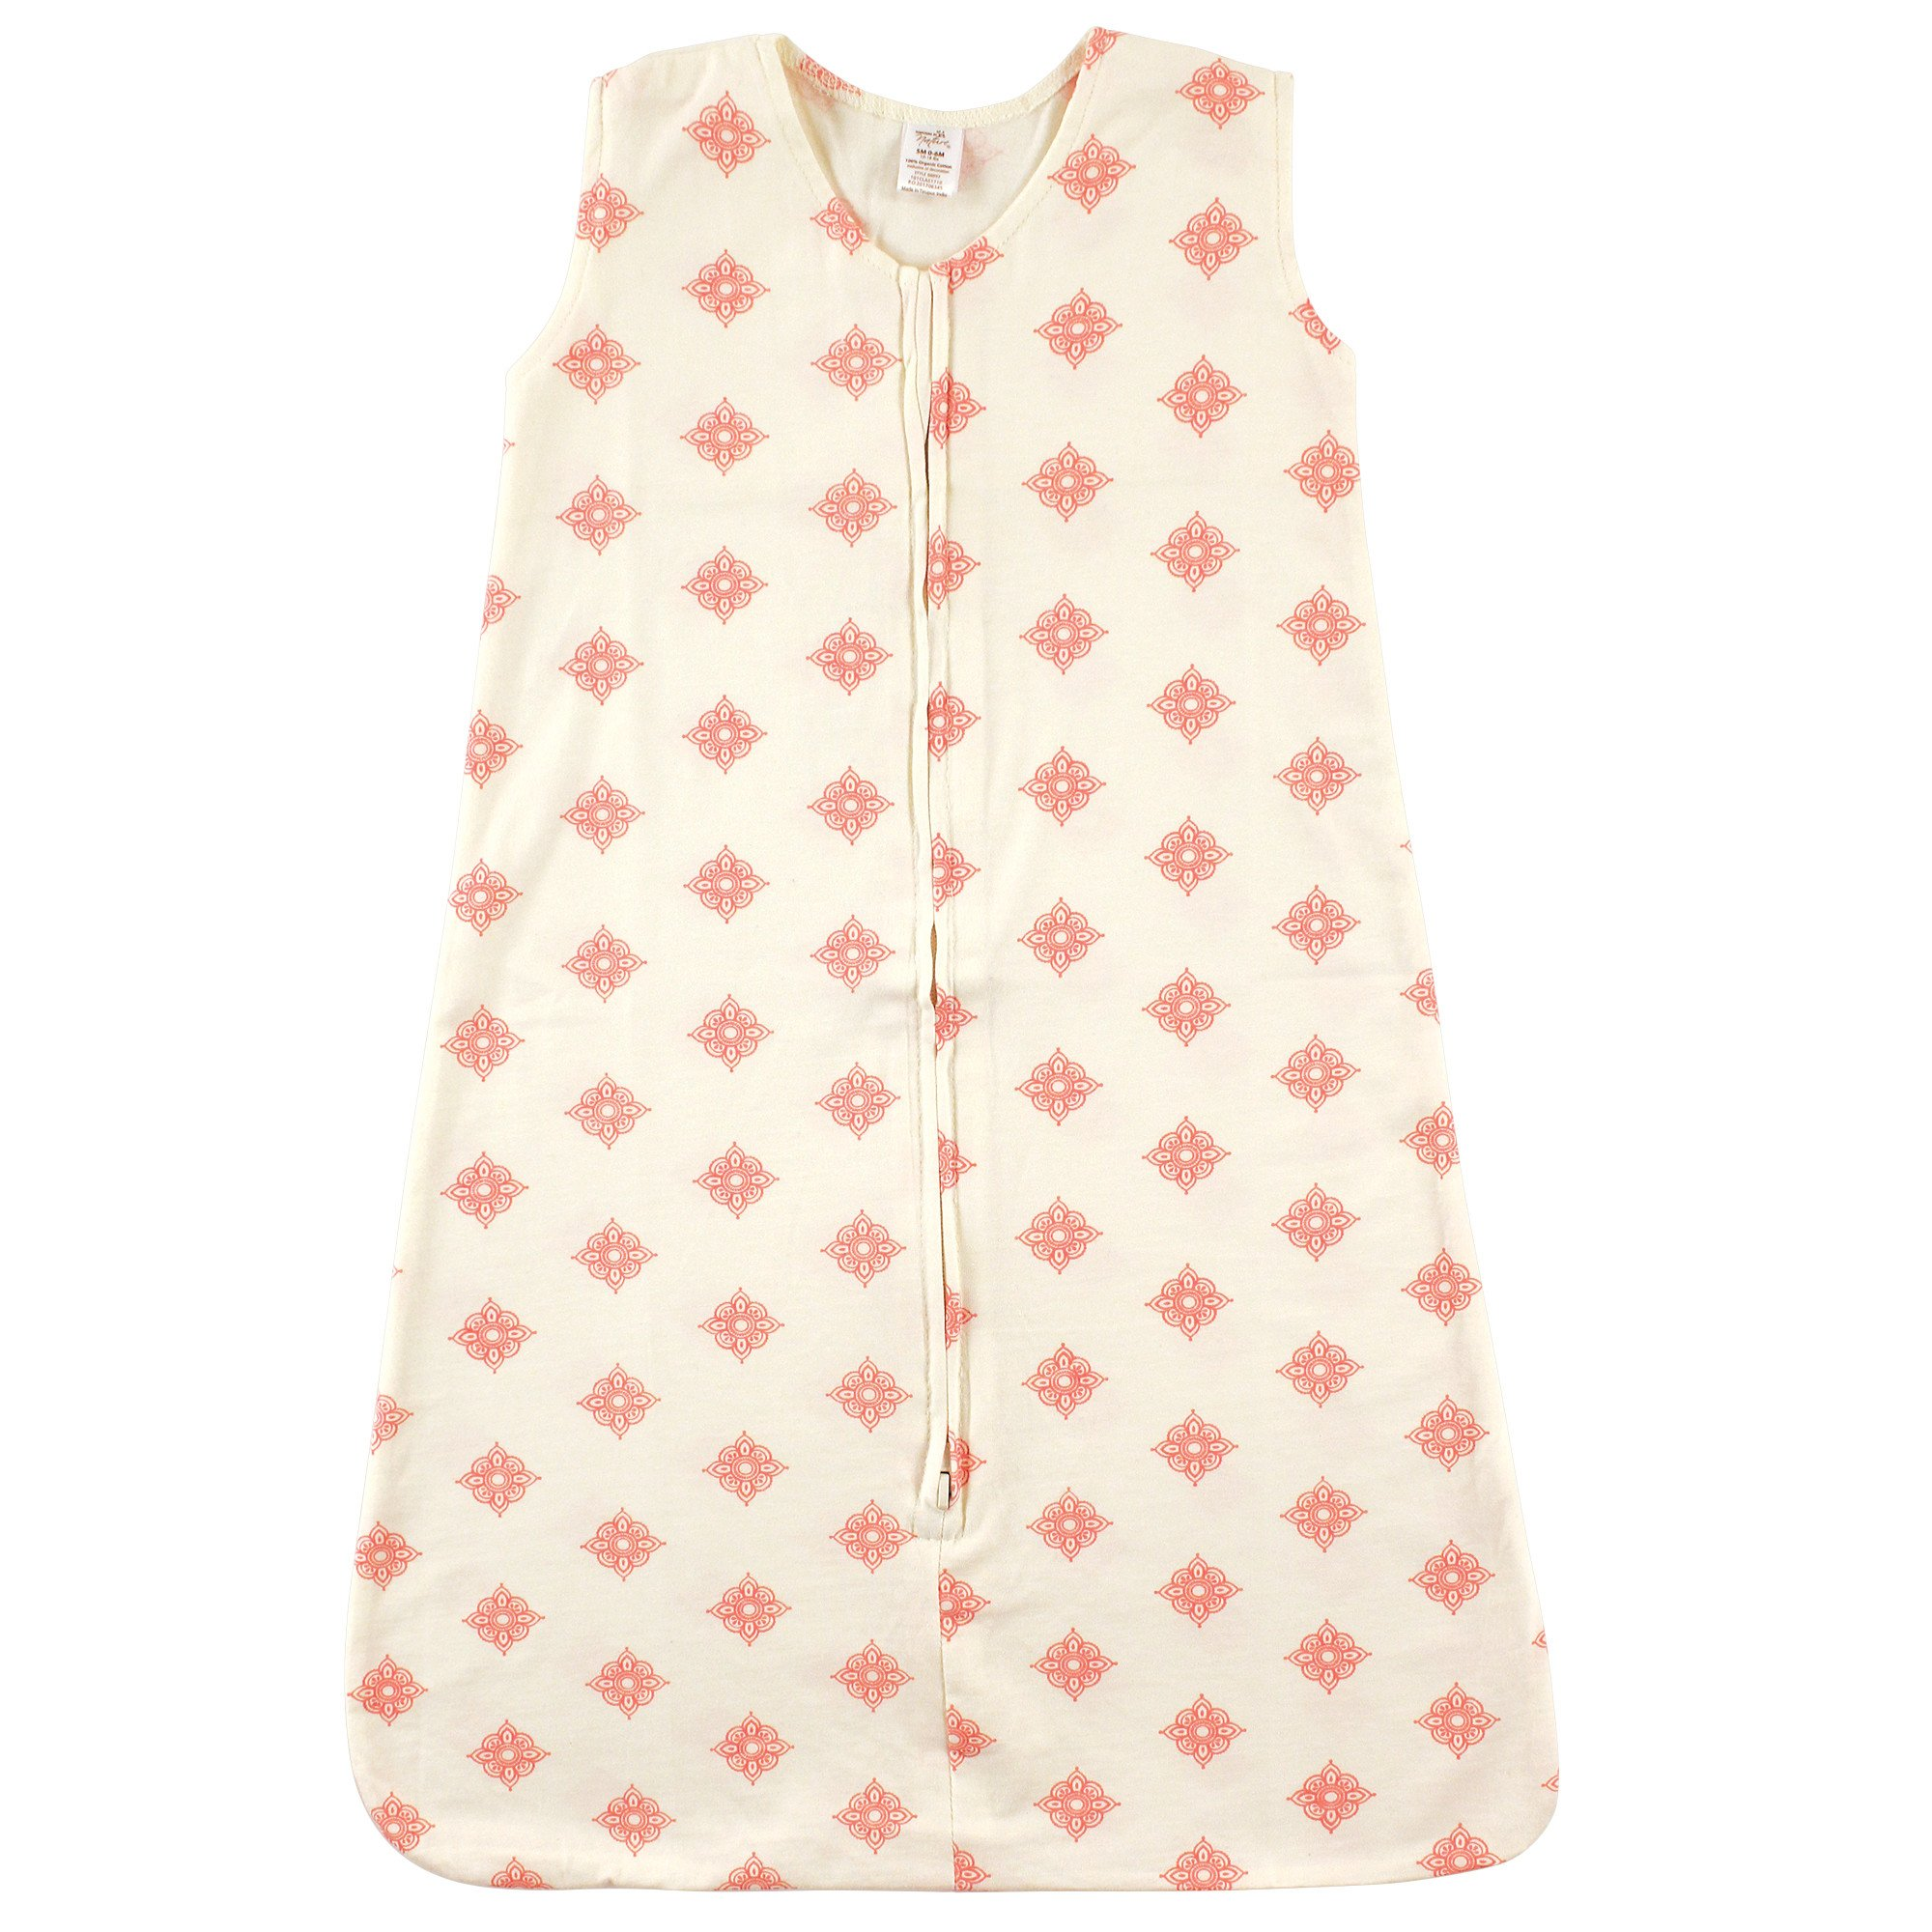 Touched by Nature Baby Organic Cotton Wearable Safe Sleeping Bag, Dainty Rosette, 18-24 Months